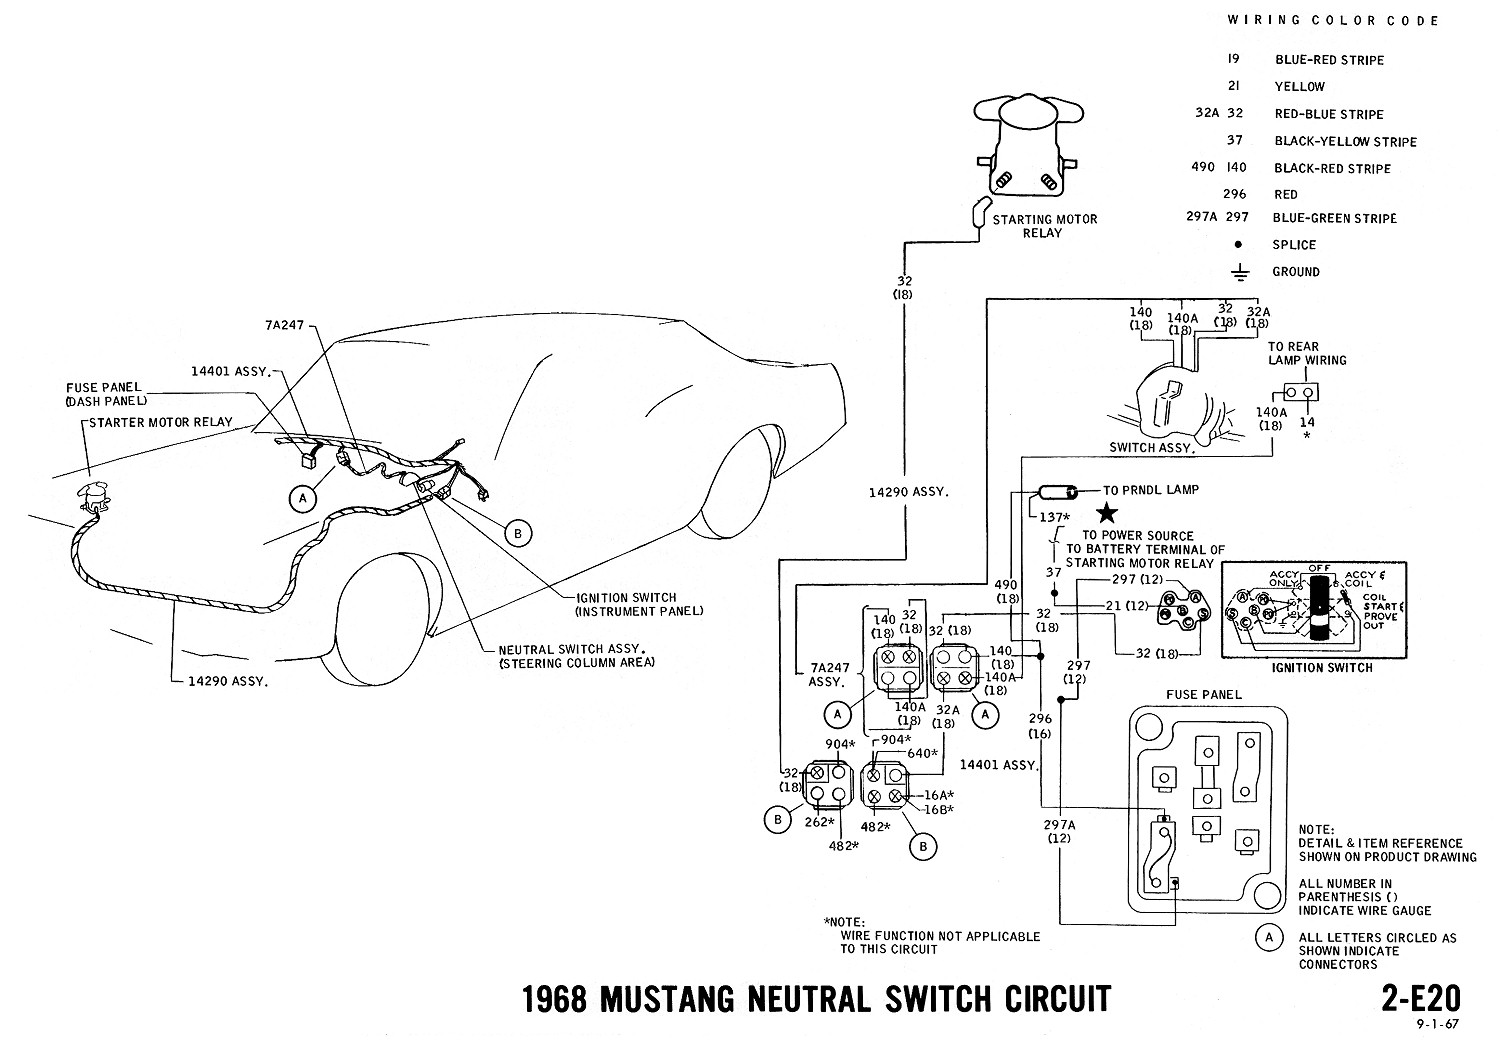 1968 mustang starter wiring diagram | attack-timetab wiring diagram ran -  attack-timetab.rolltec-automotive.eu  rolltec-automotive.eu